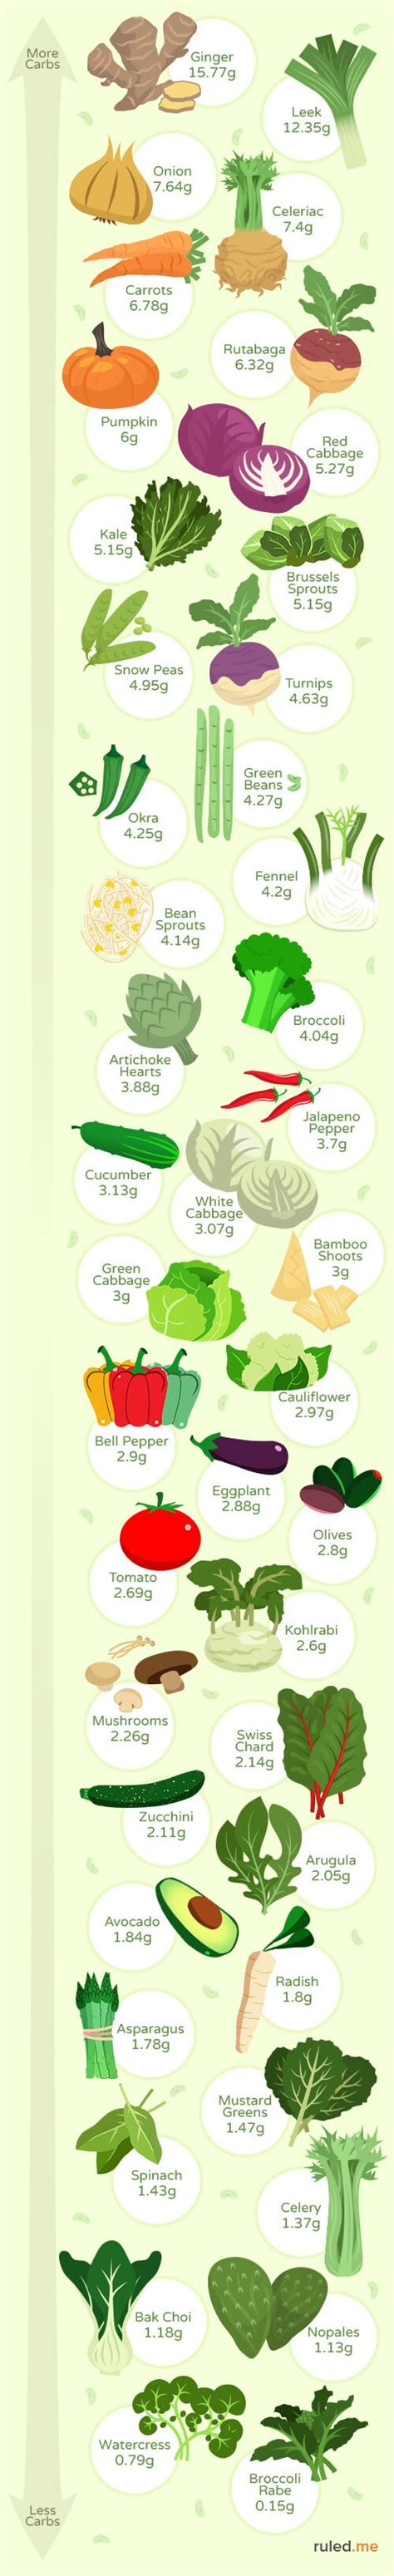 vegetables on keto the best low carb vegetables for keto ruled me